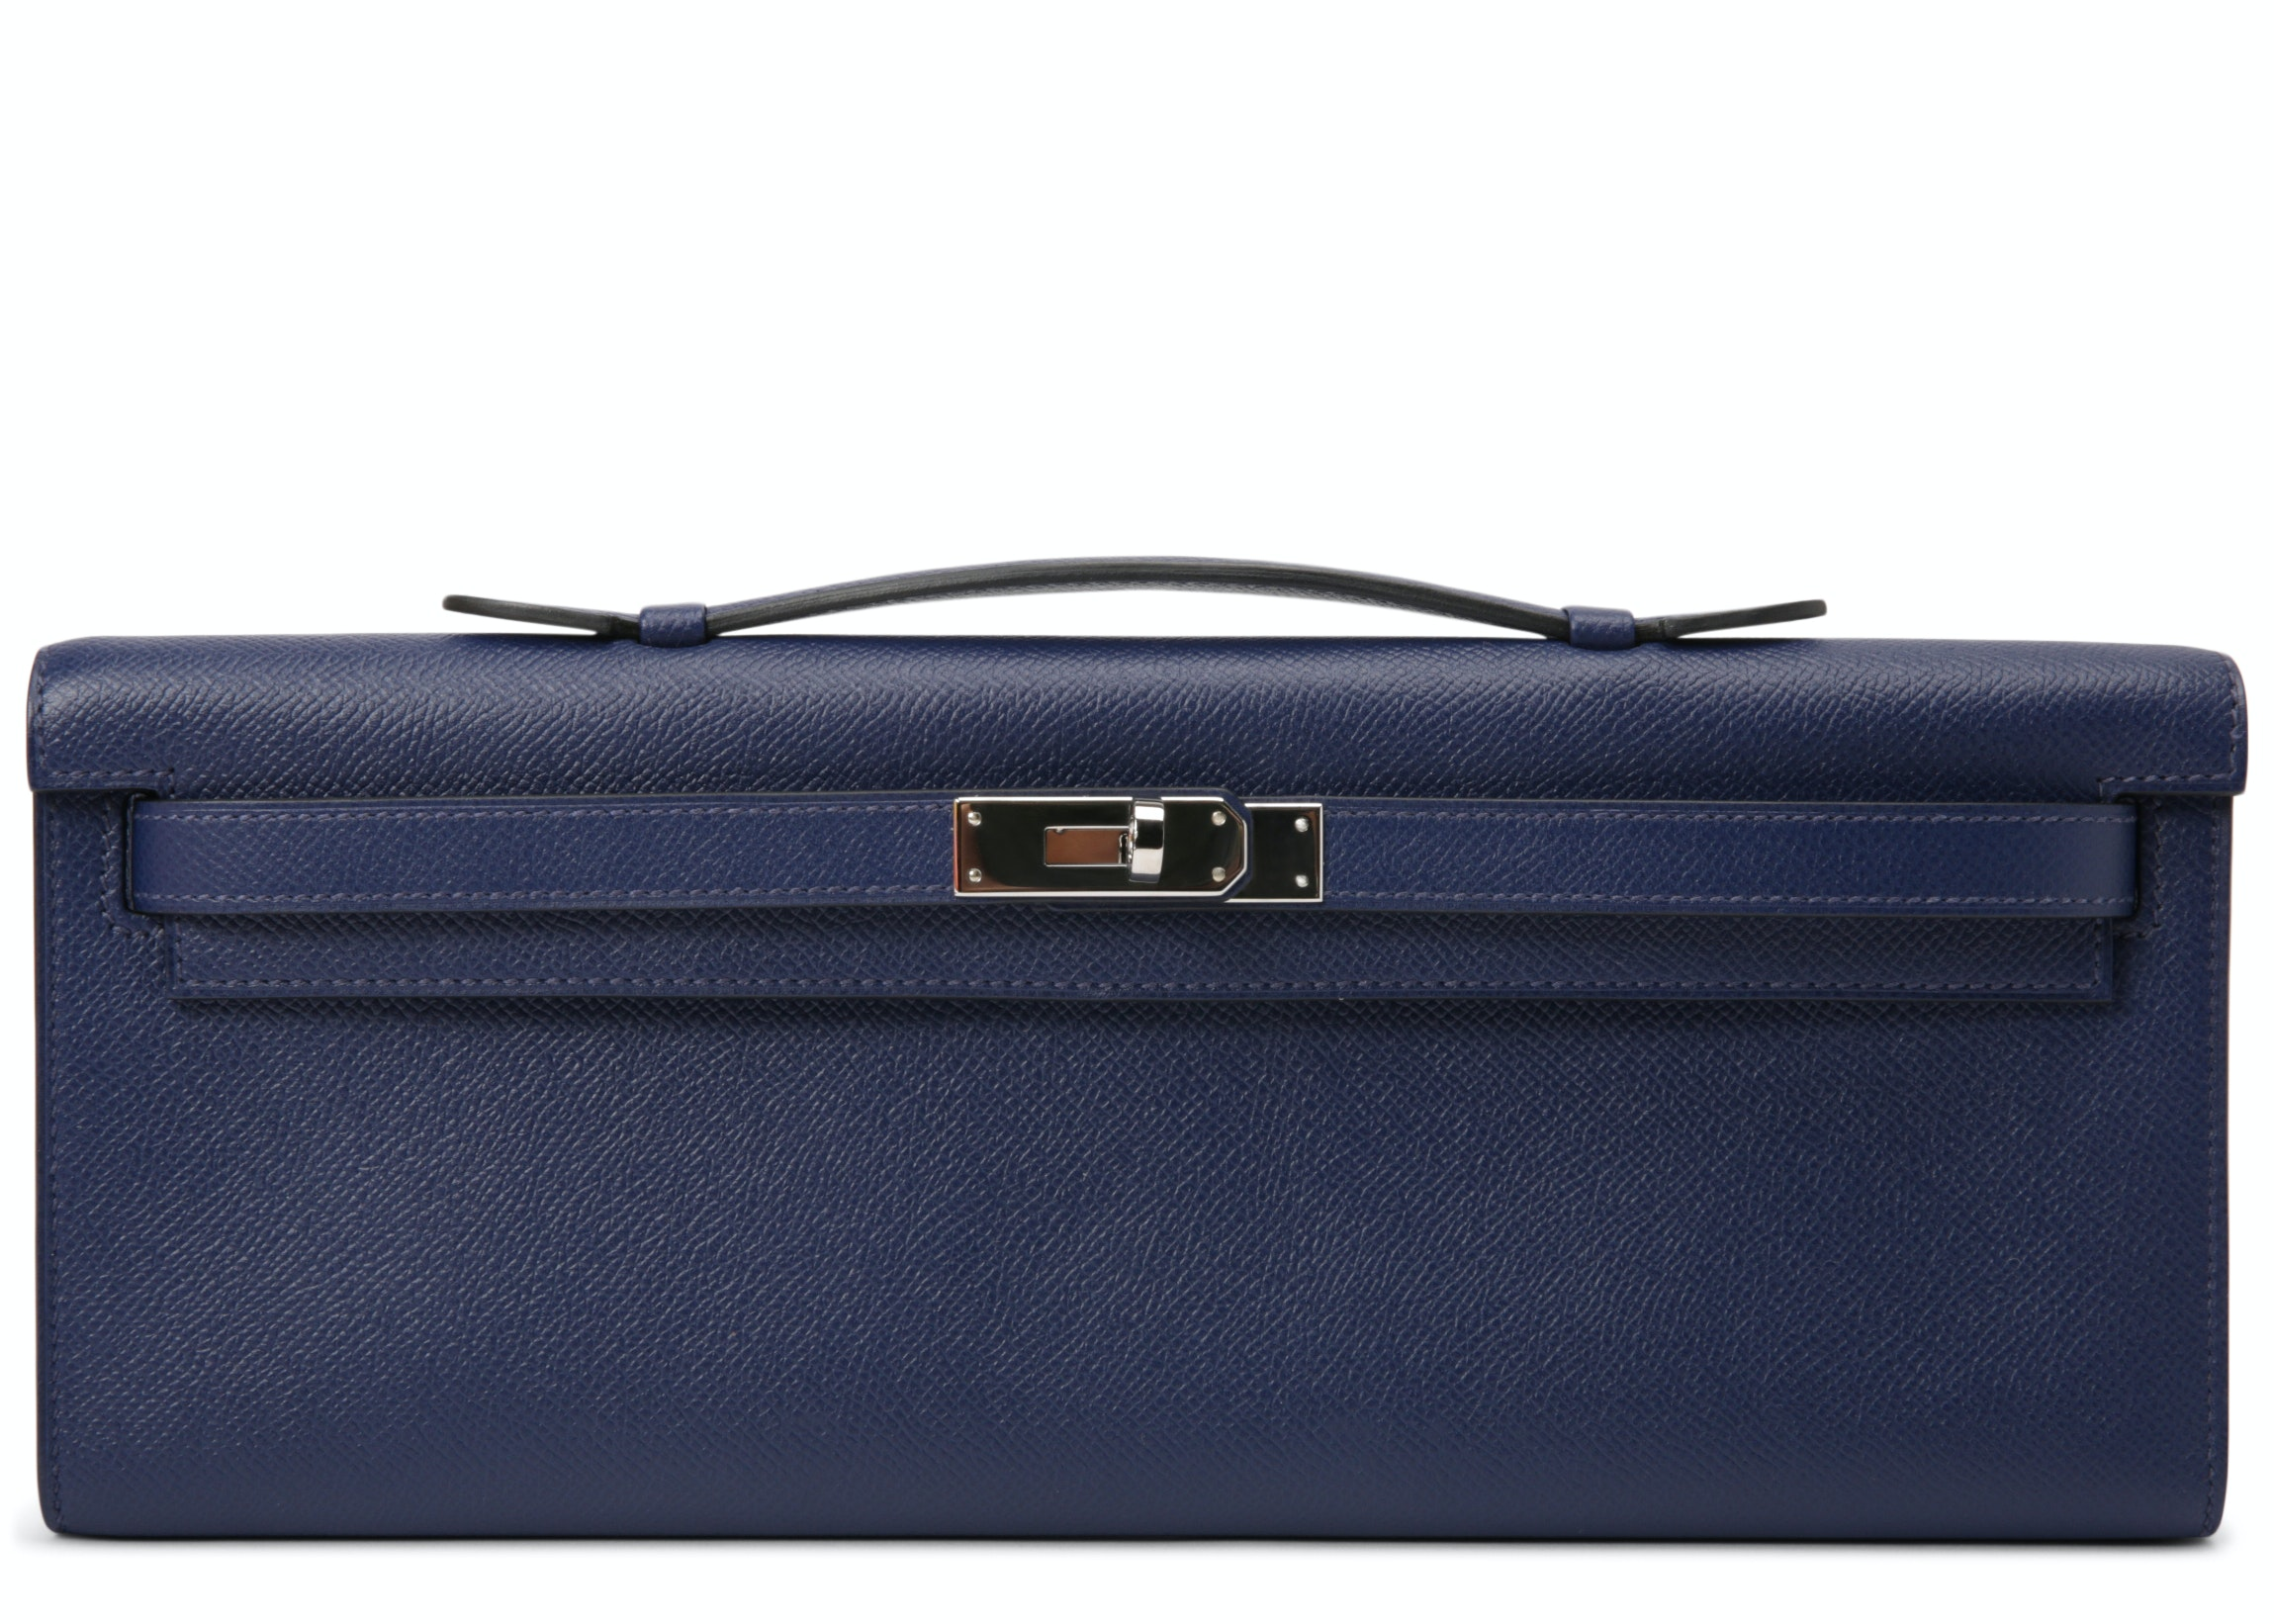 Hermes Kelly Cut Swift Bleu Saphir